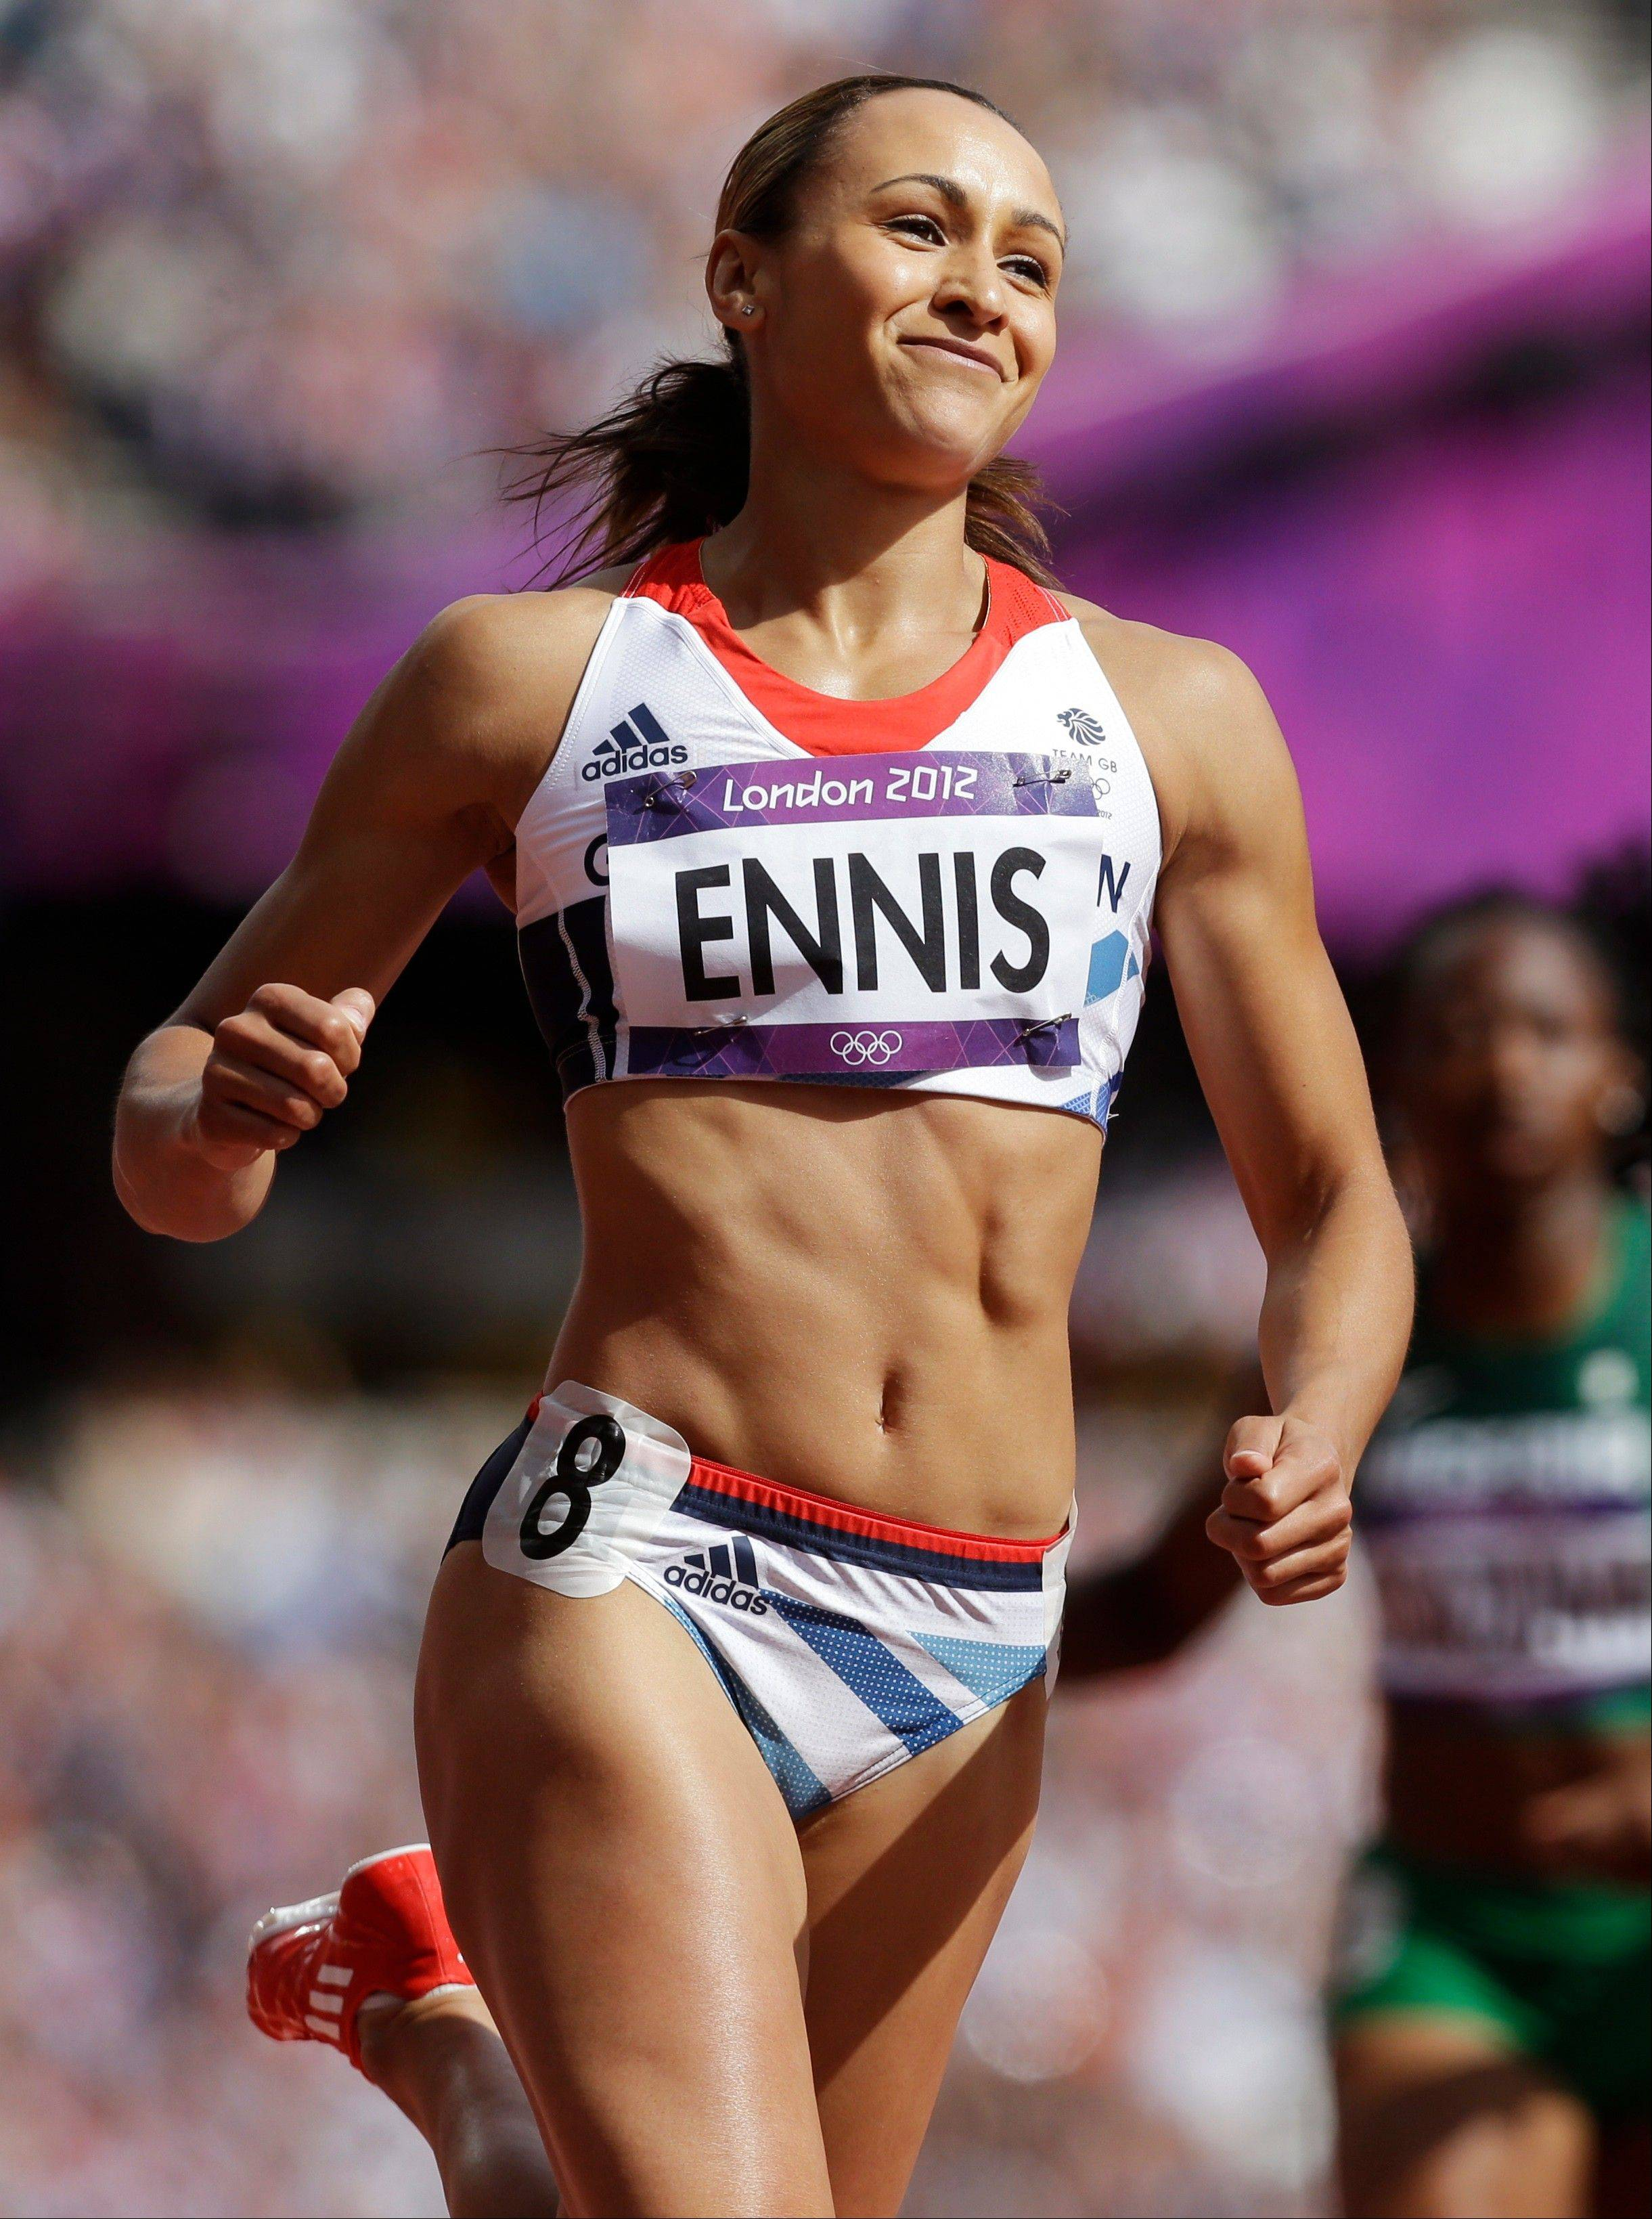 Britain's Jessica Ennis smiles after winning her 100-meter hurdles heat of the Women's Heptathlon during the athletics in the Olympic Stadium at the 2012 Summer Olympics, London, Friday, Aug. 3, 2012.